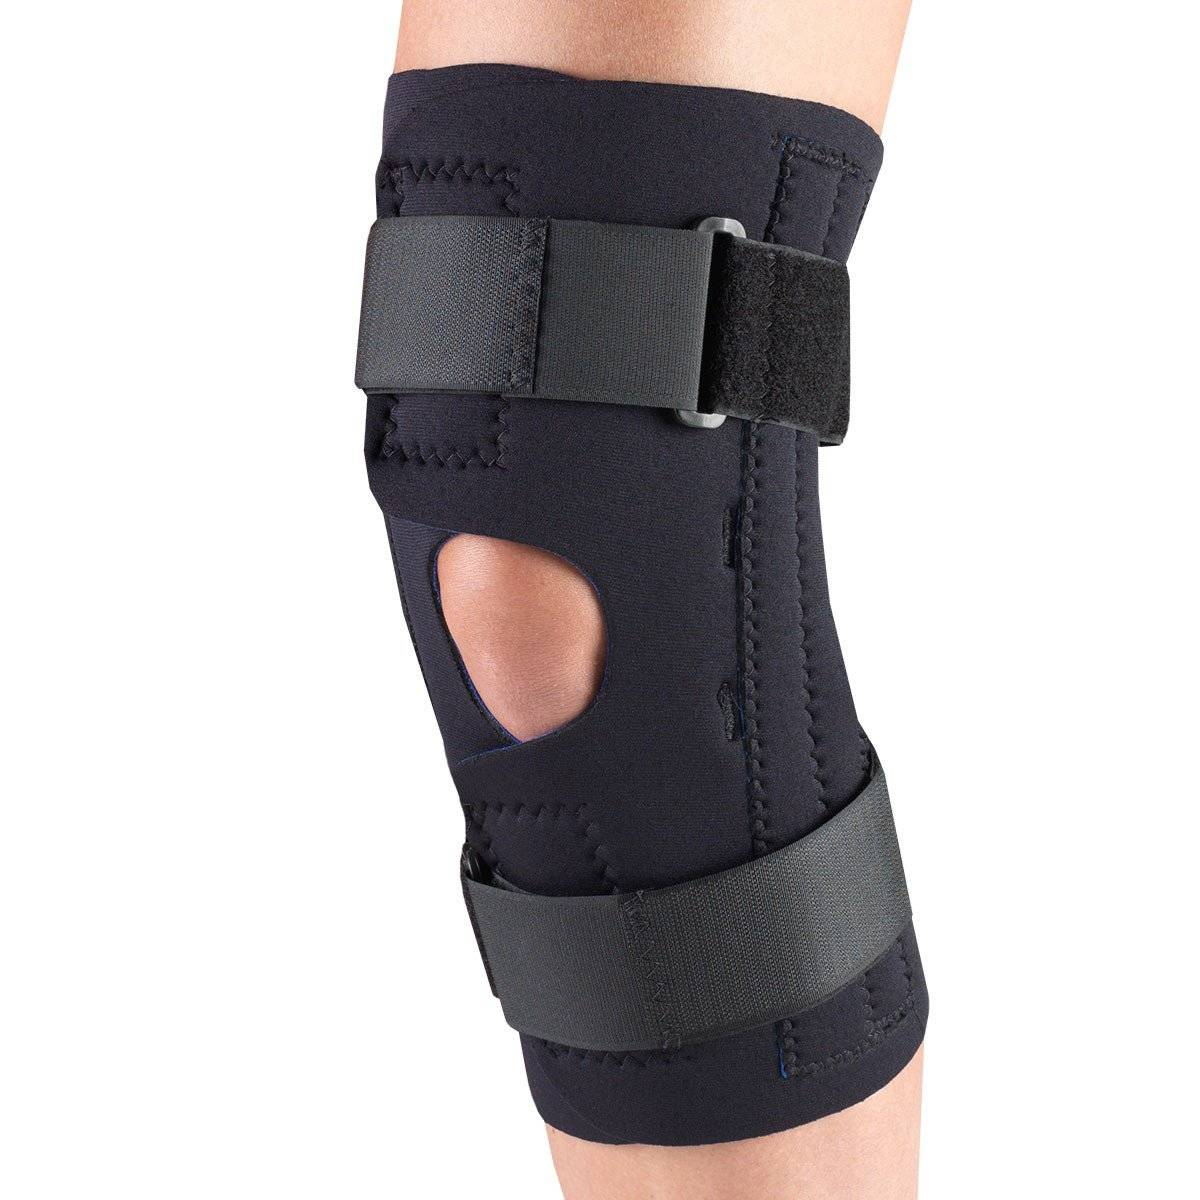 0312 / NEOPRENE KNEE STABILIZER WRAP - SPIRAL STAYS